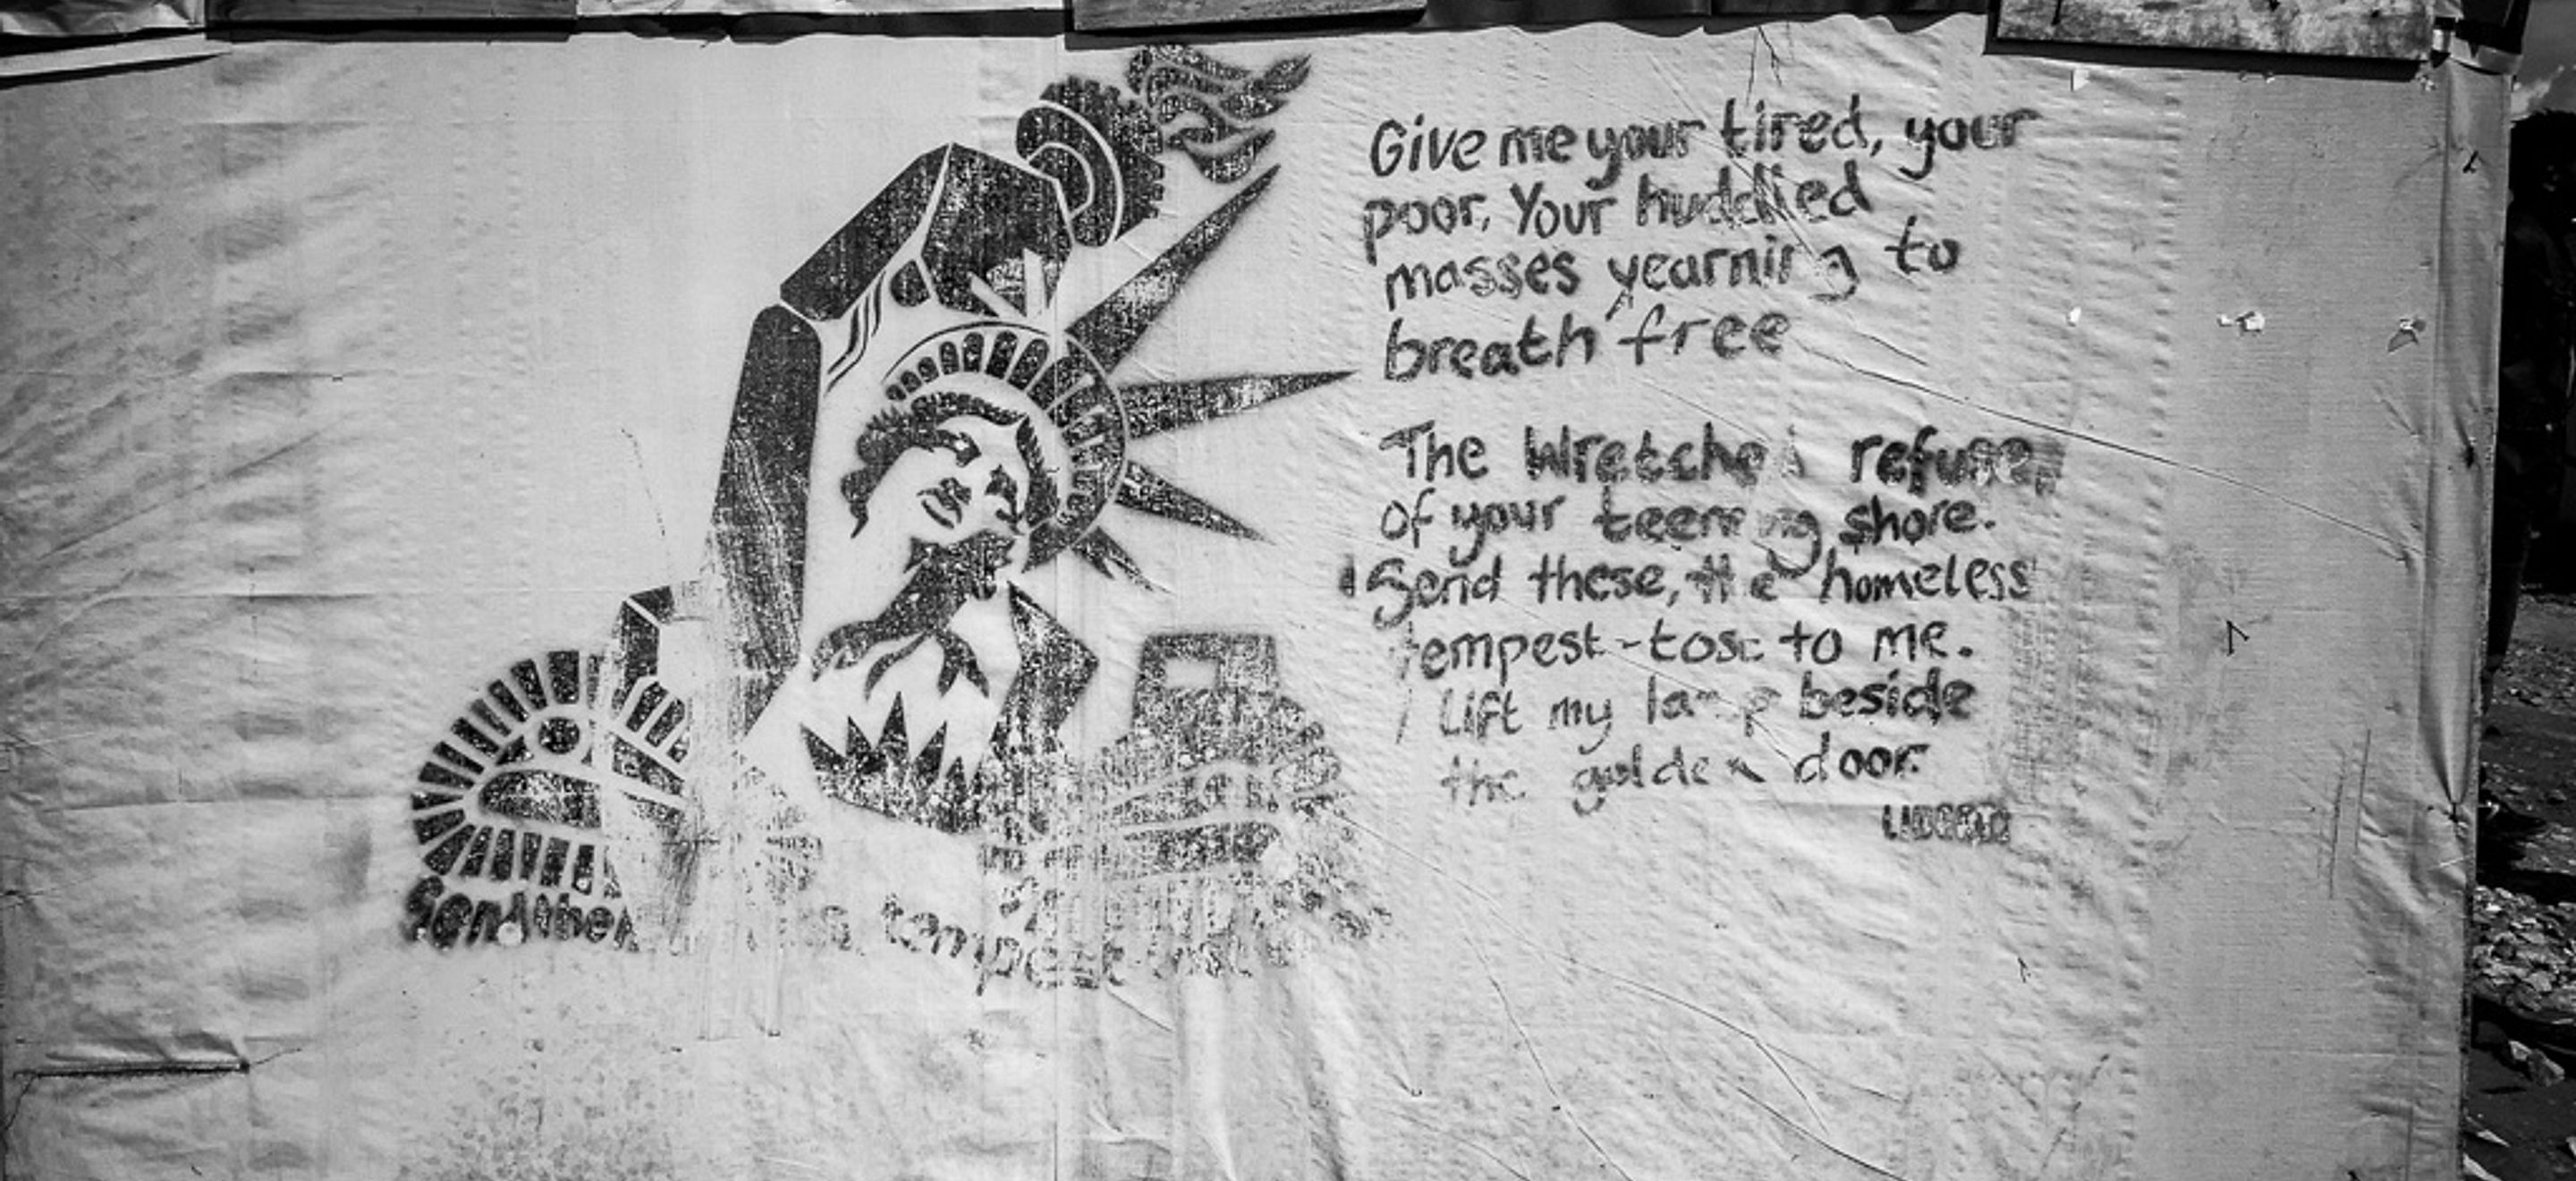 "Stenciled artwork of the Statue of Liberty sprayed onto a piece of canvas-like fabric. A portion of Emma Lazarus's poem ""The New Colossus"" are also painted on the fabric - ""Give me your tired, your poor, Your huddled masses yearning to breathe free, The wretched refuse of your teeming shore. Send these, the homeless, tempest-tost to me, I lift my lamp beside the golden door!"""